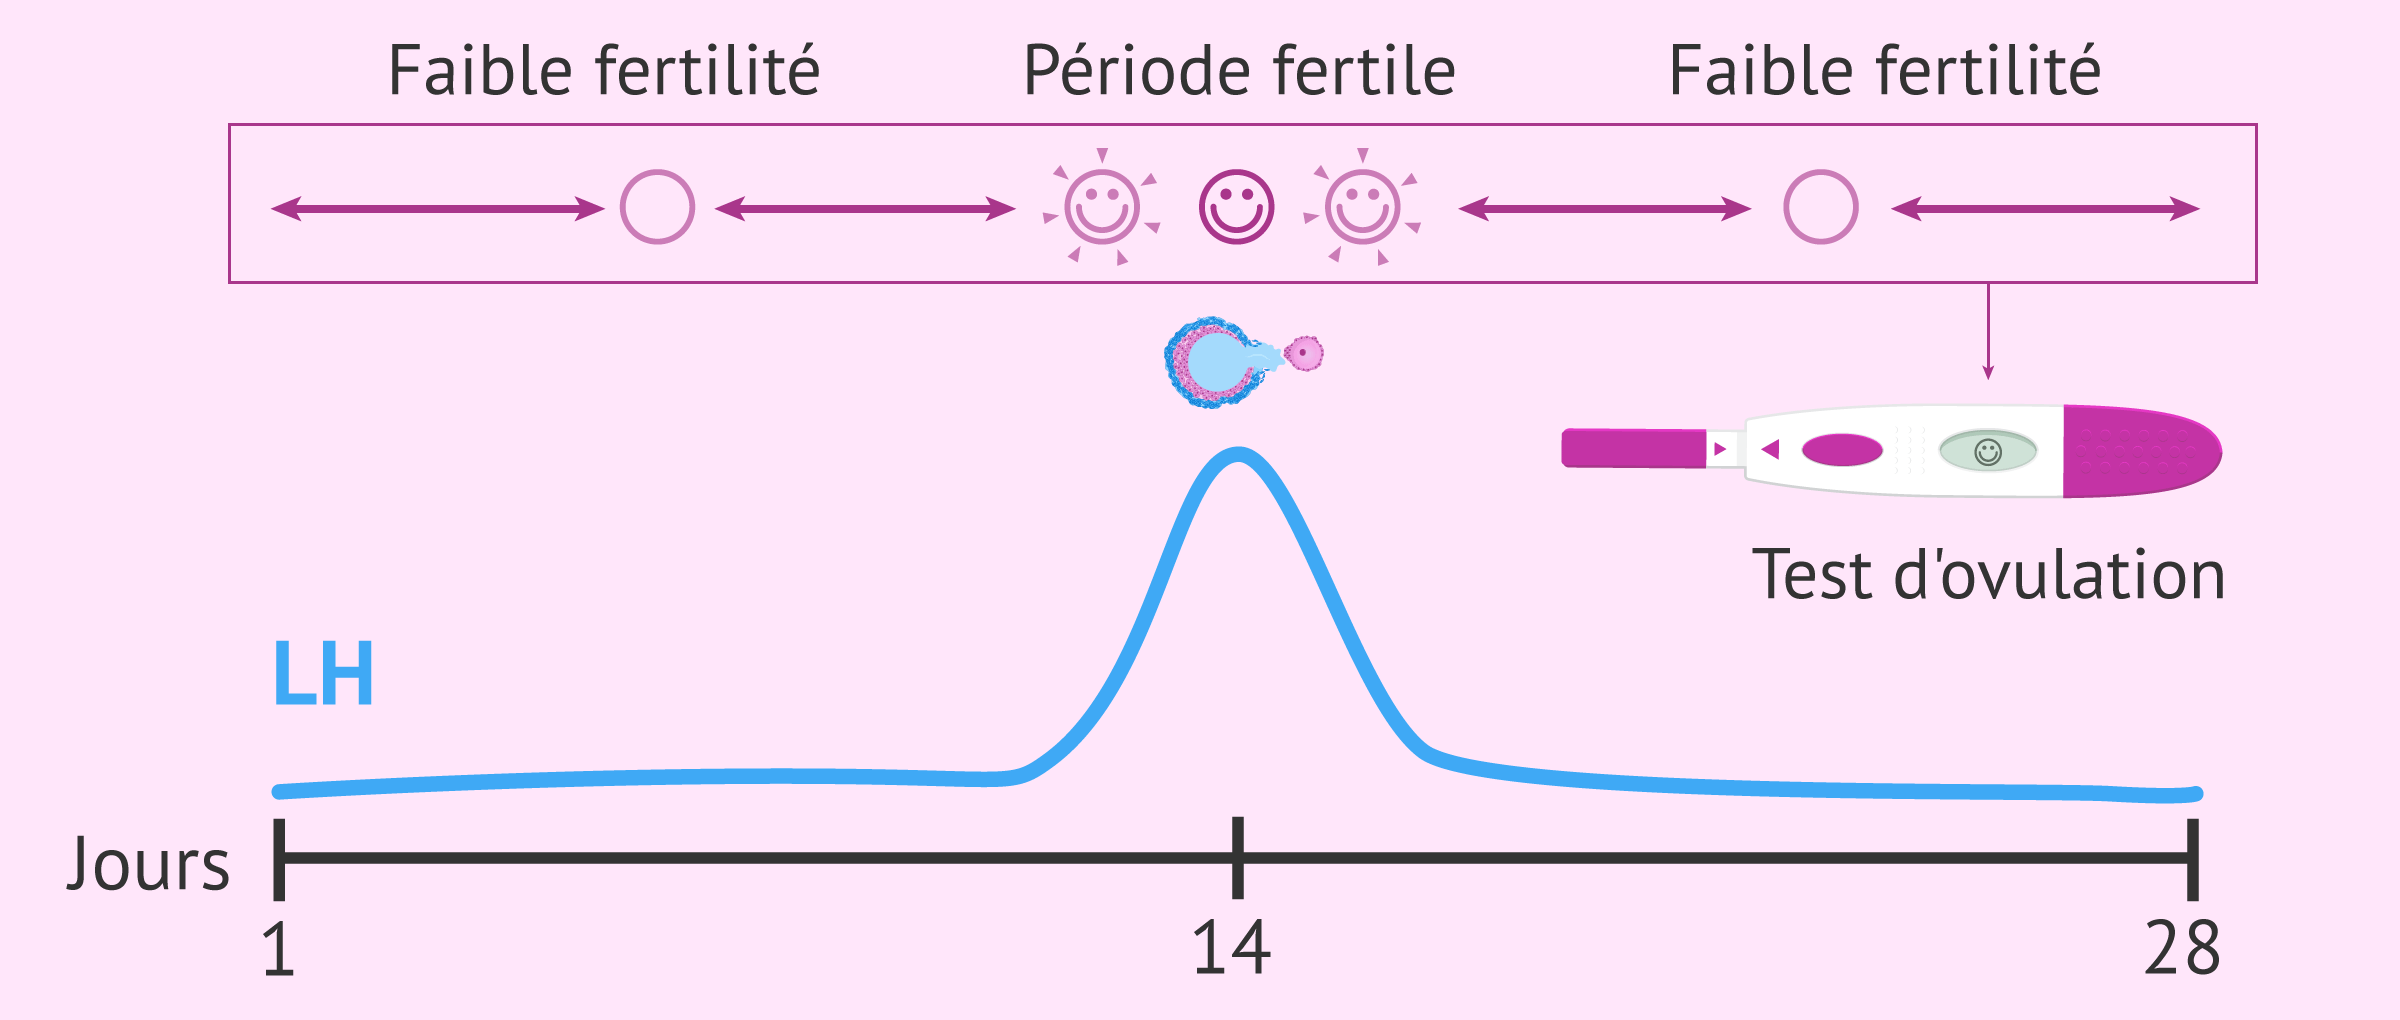 Que mesure le test d'ovulation ?